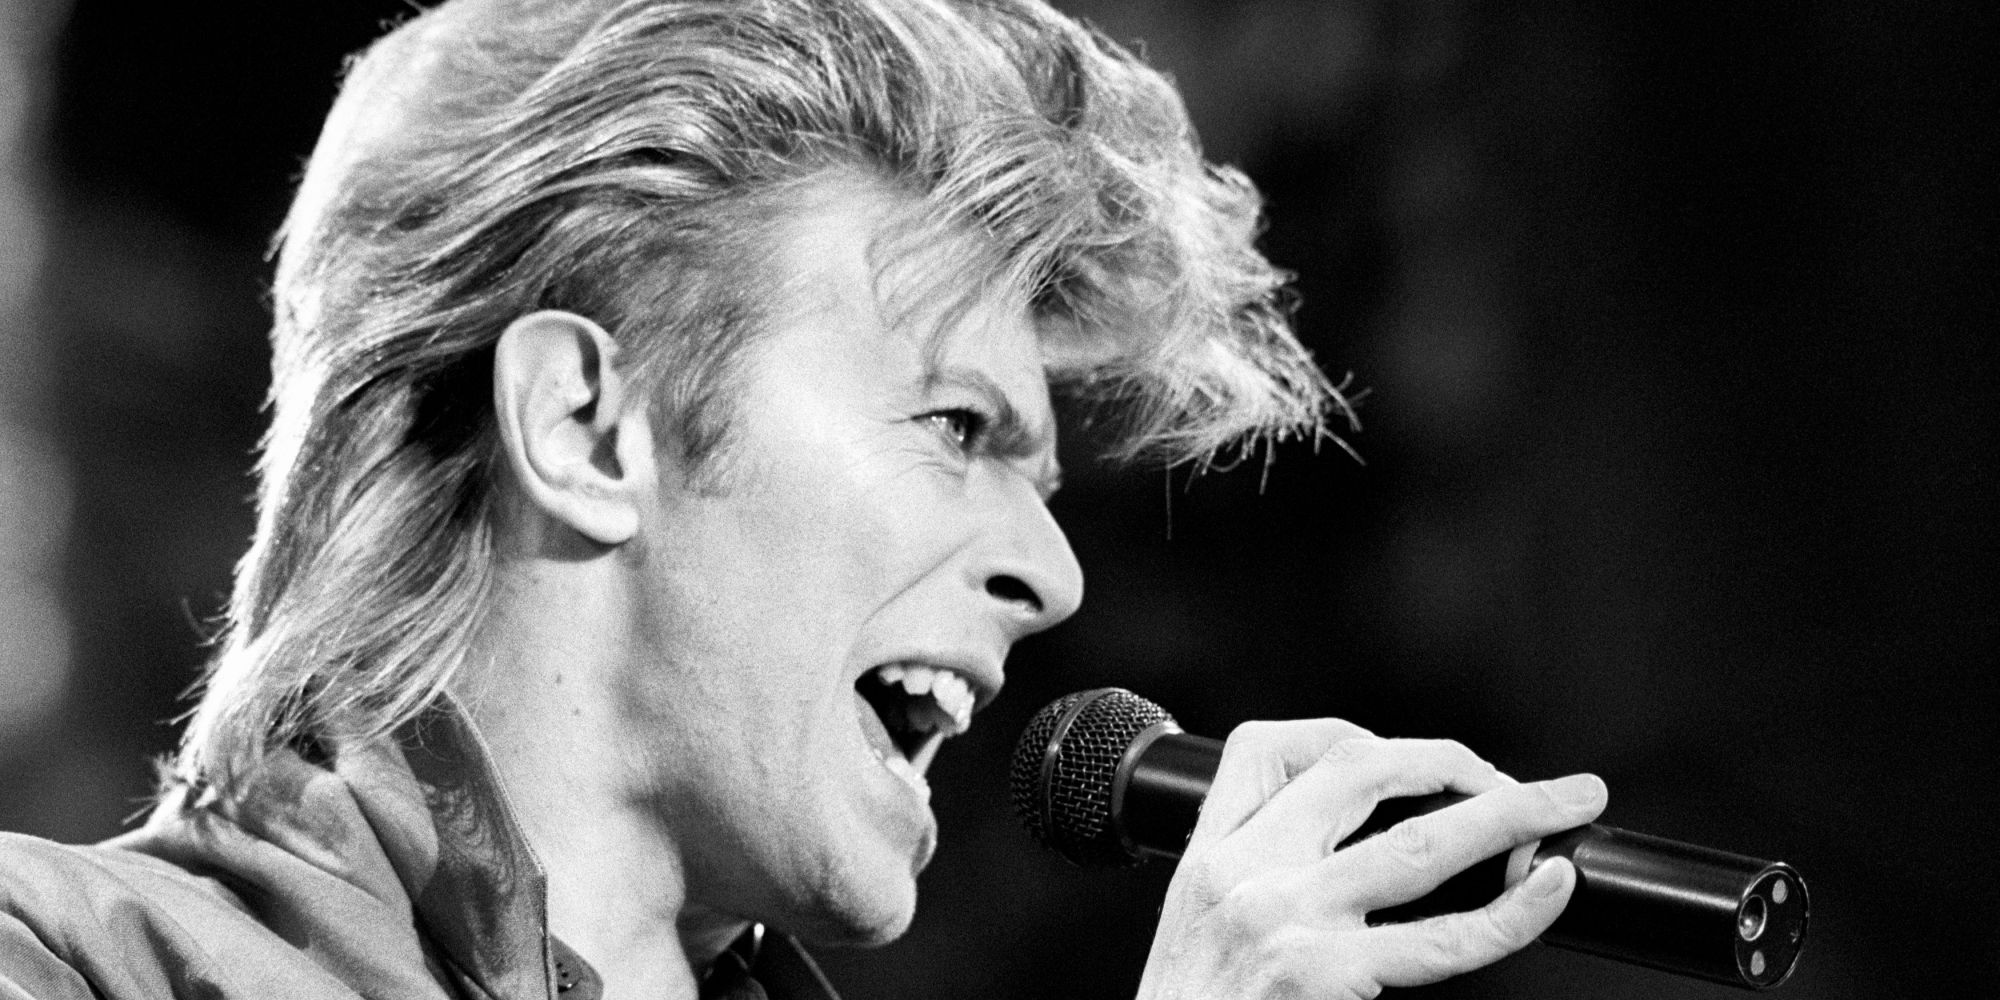 The Man Who Fell To Earth: Hair, Style & Bowie's Fear Of ...